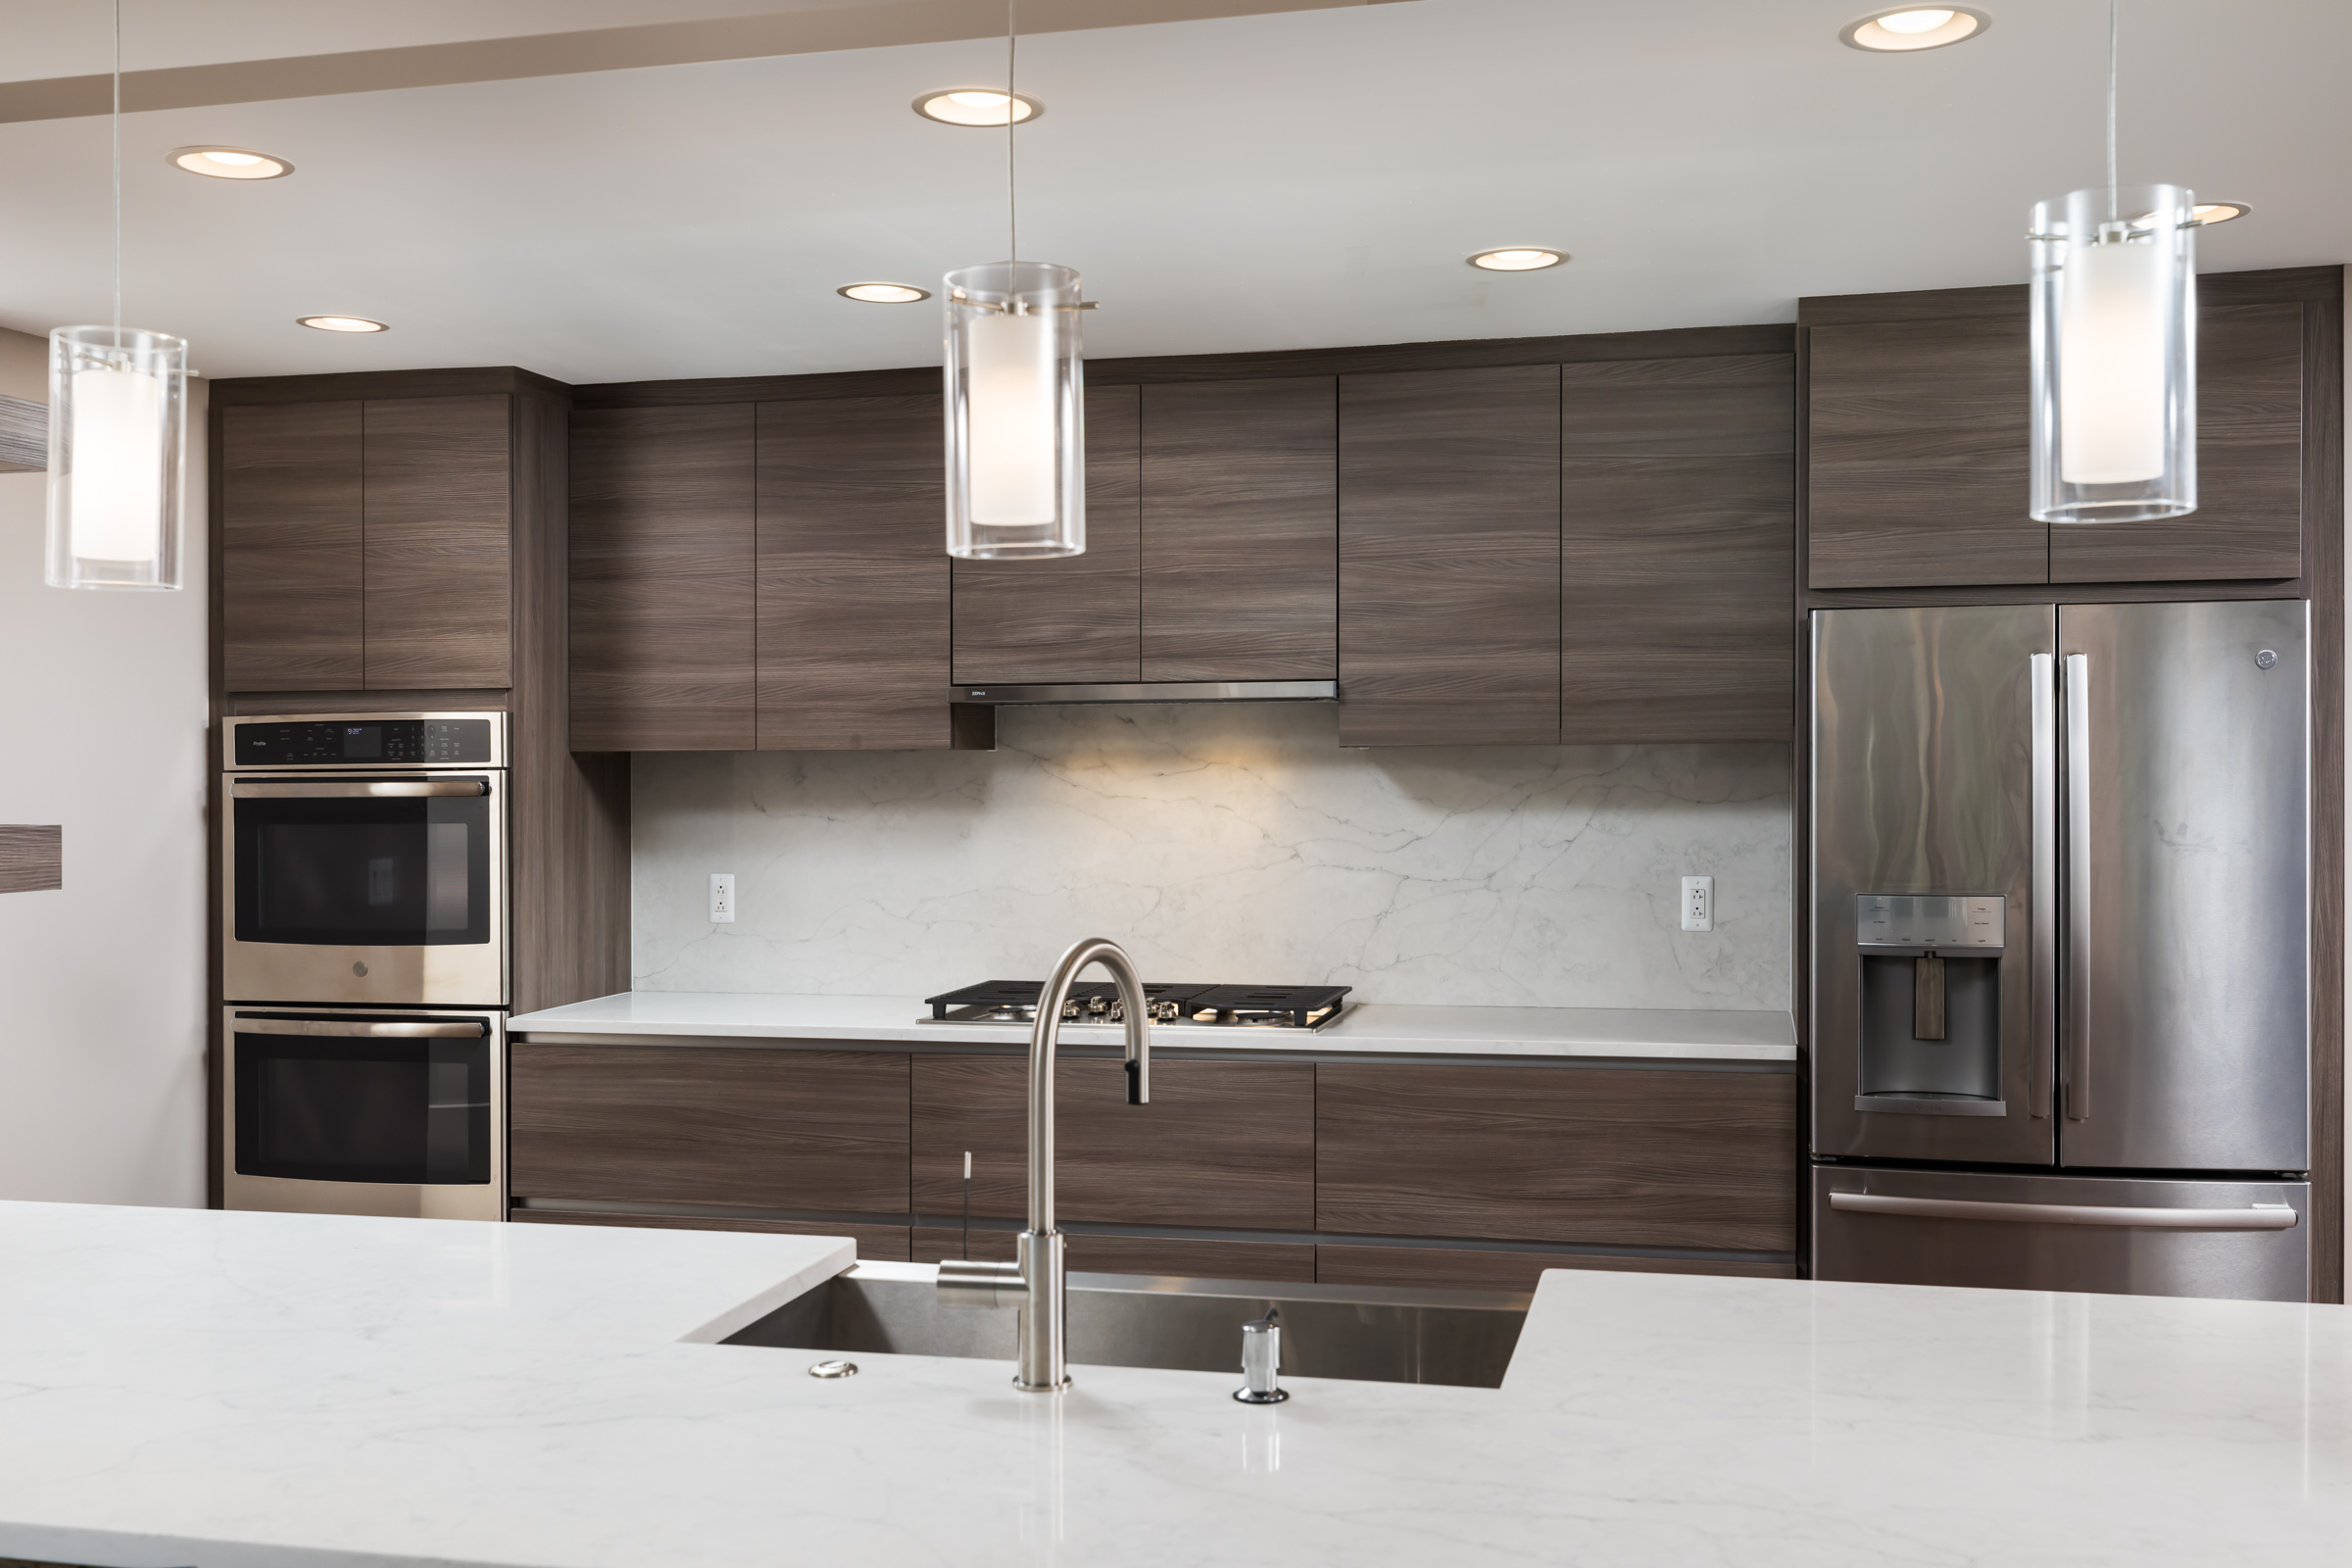 Eclipse Cabinetry